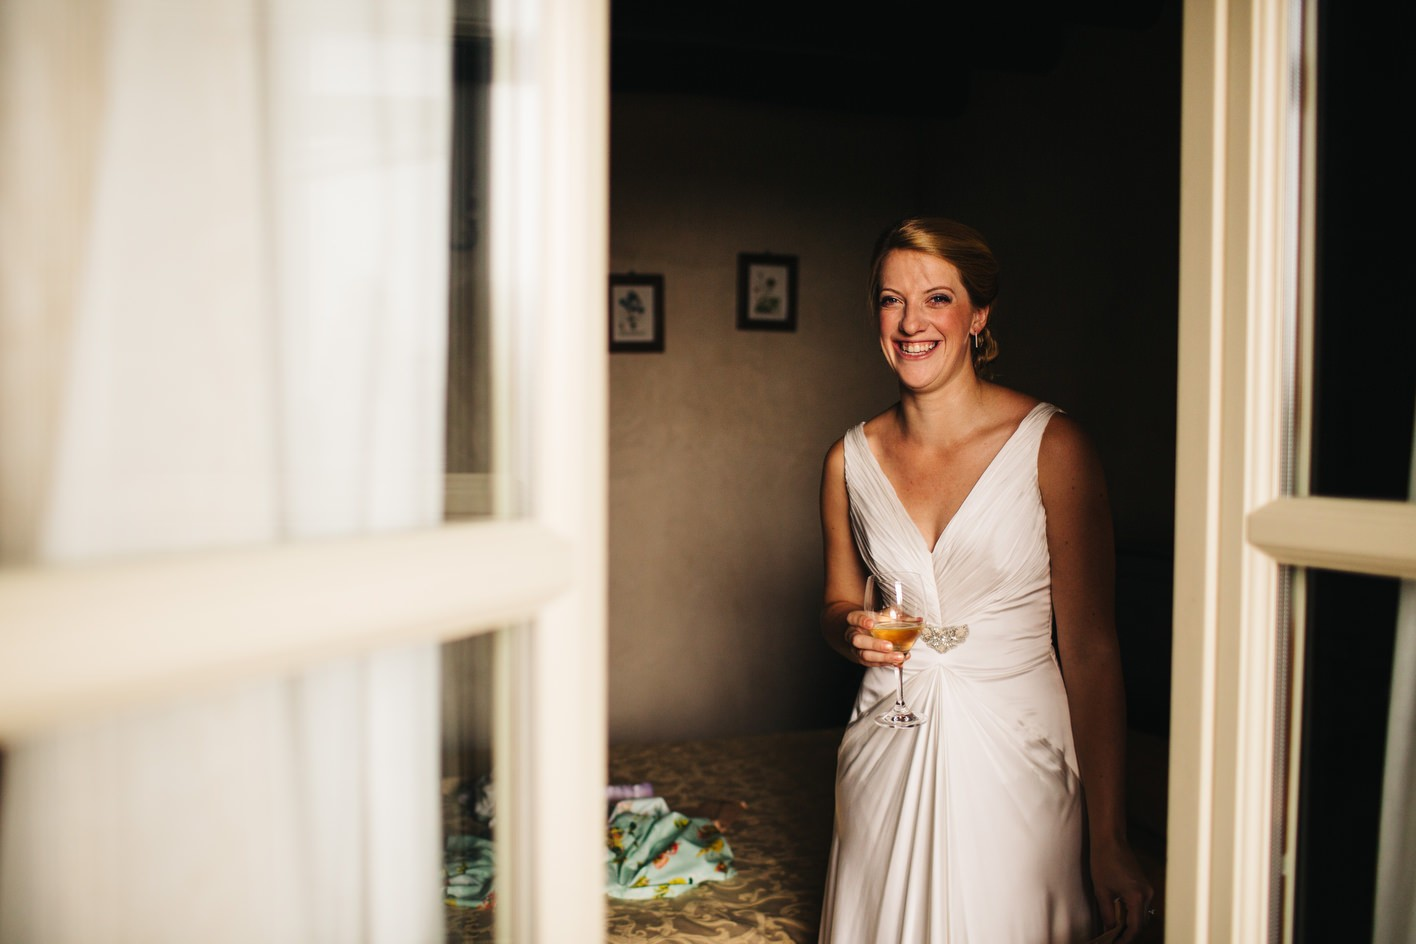 Bride portrait in Italy destination wedding